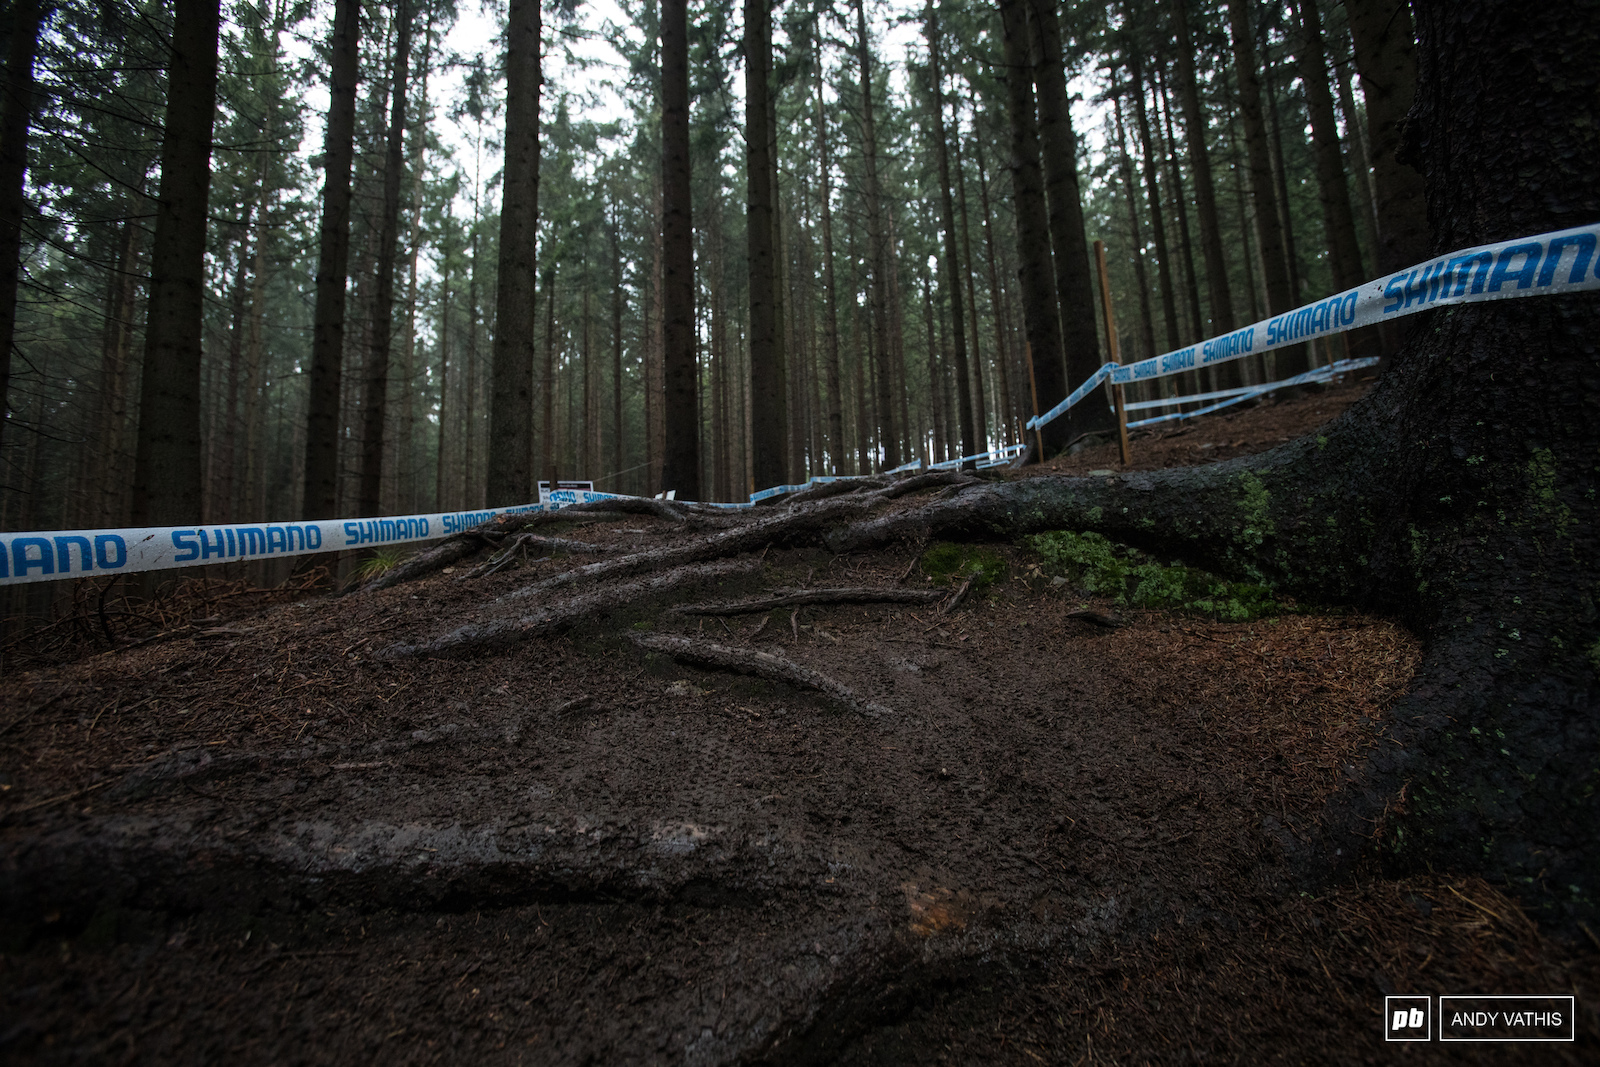 The roots are out to claim pedals and chainrings if you re not careful.